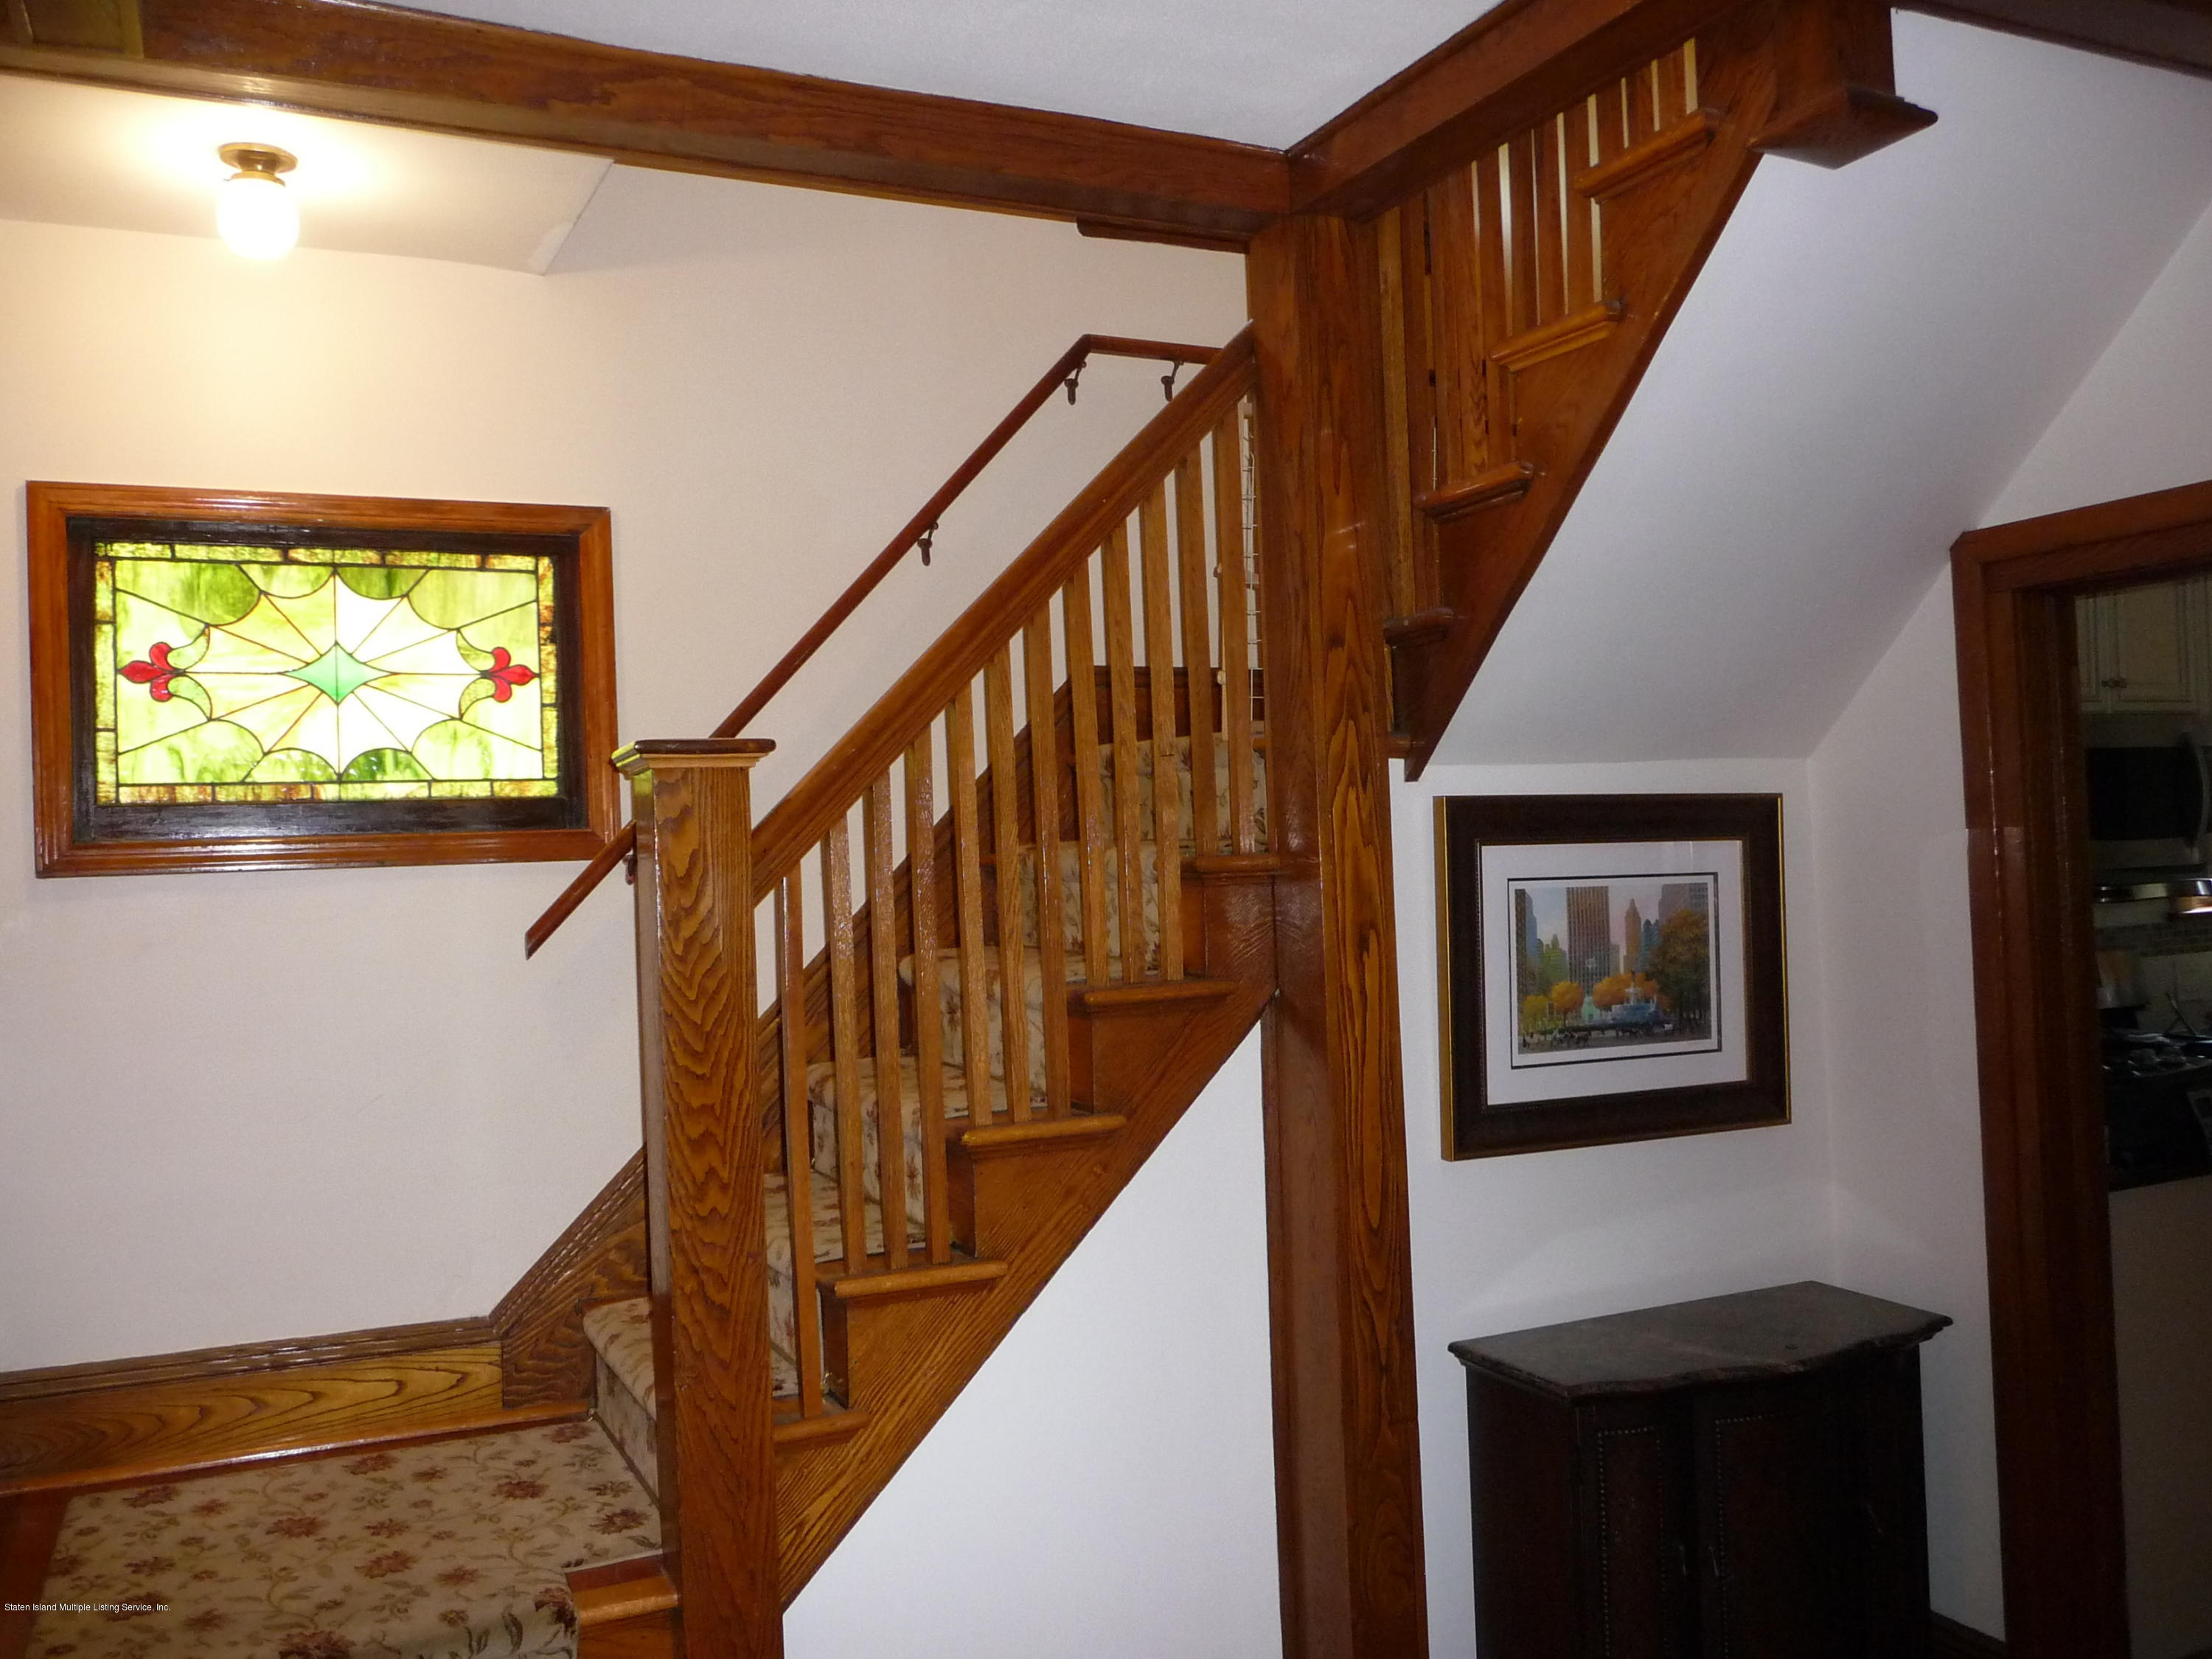 Single Family - Detached 77 Todt Hill Road  Staten Island, NY 10314, MLS-1129718-28